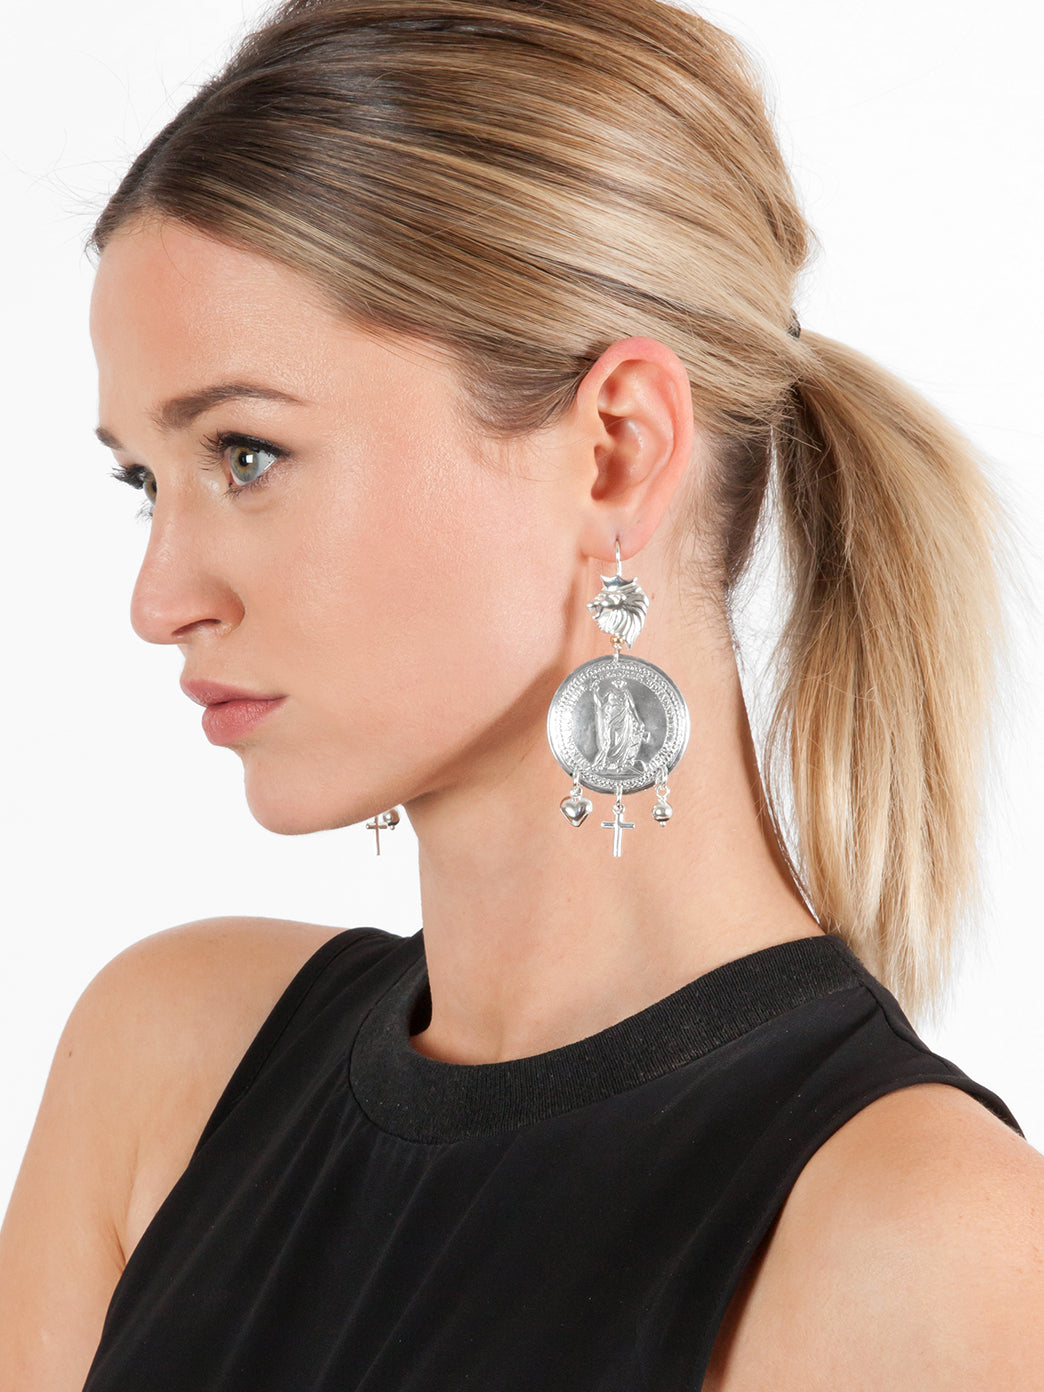 Fiorina Jewellery Leone Earrings Model